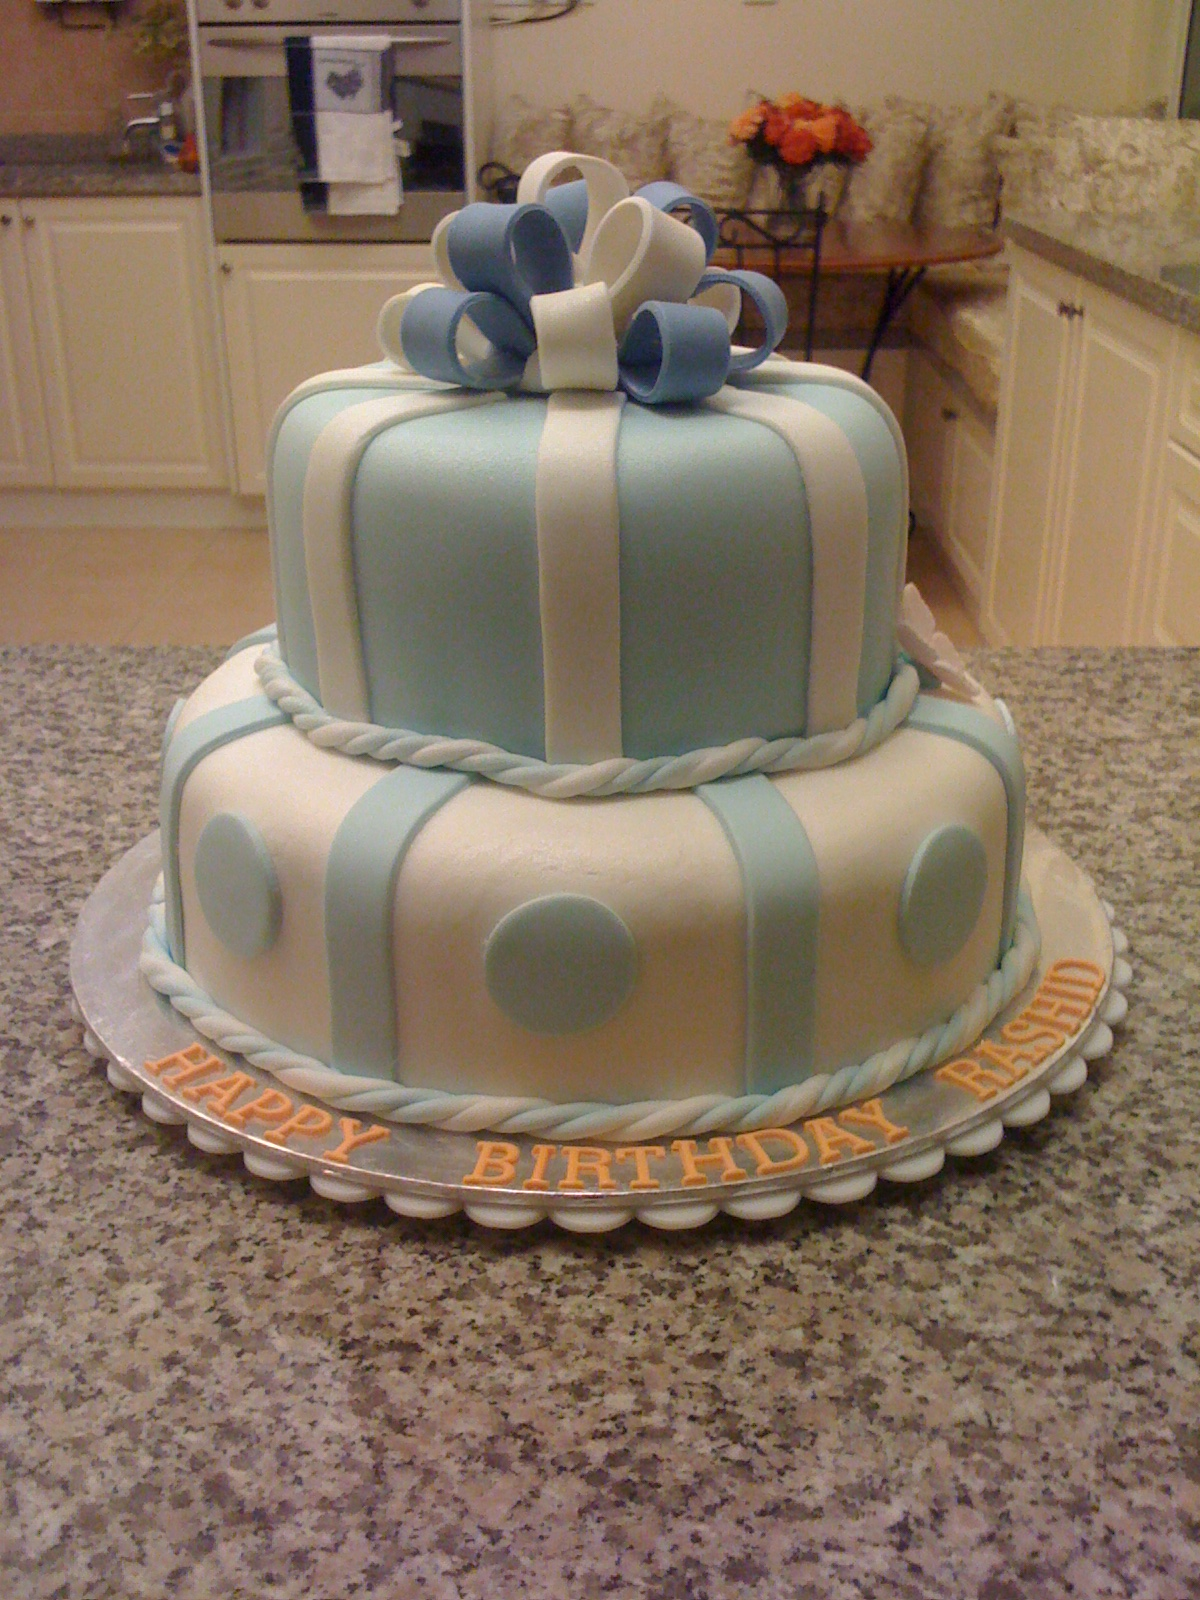 CAKE CUPBOARD 2 Tier Birthday cake light blue and white with